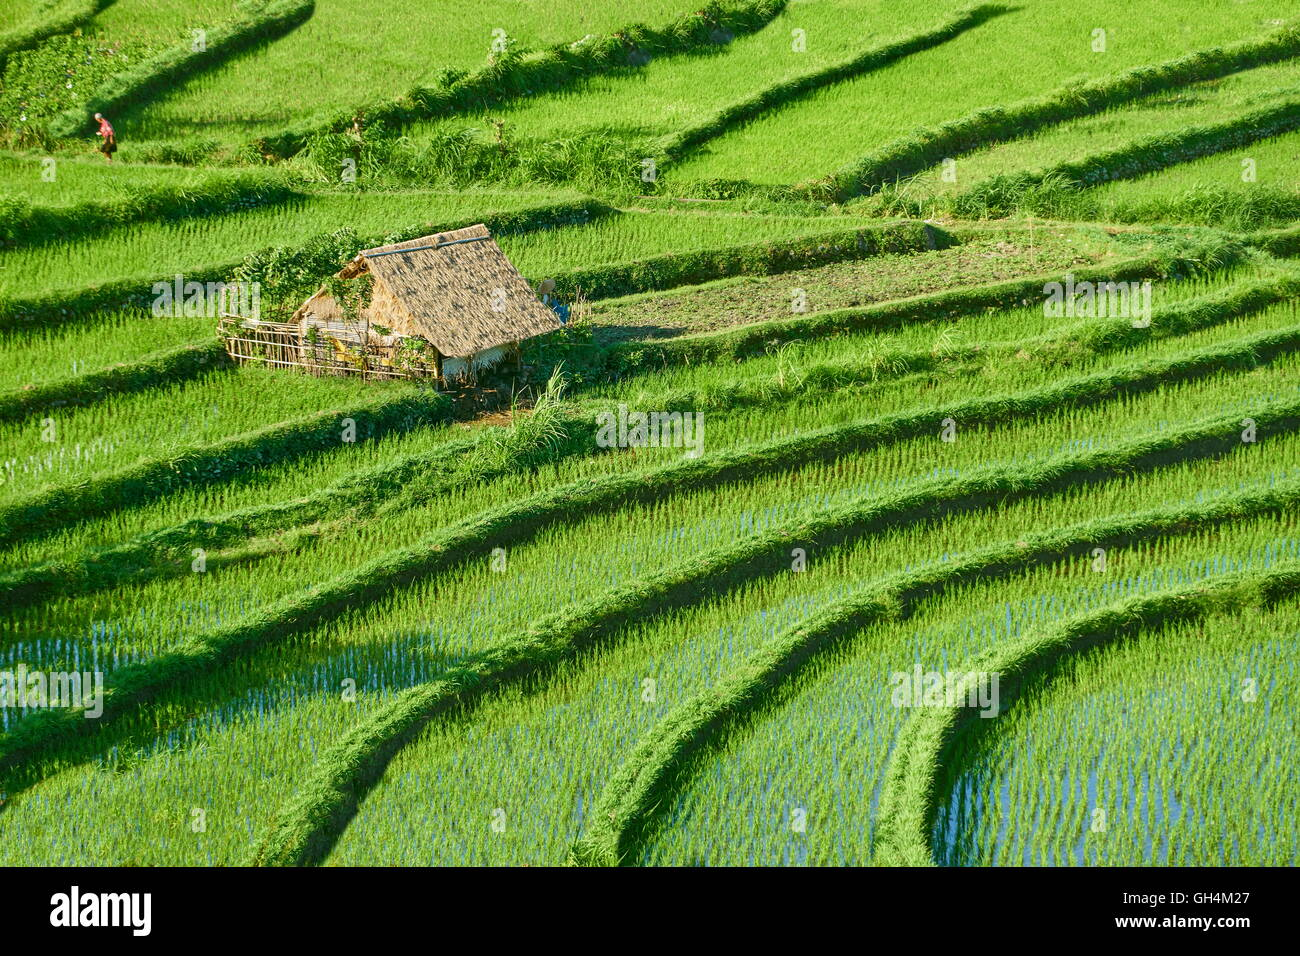 Rice Terraces Field, Bali, Indonesia - Stock Image